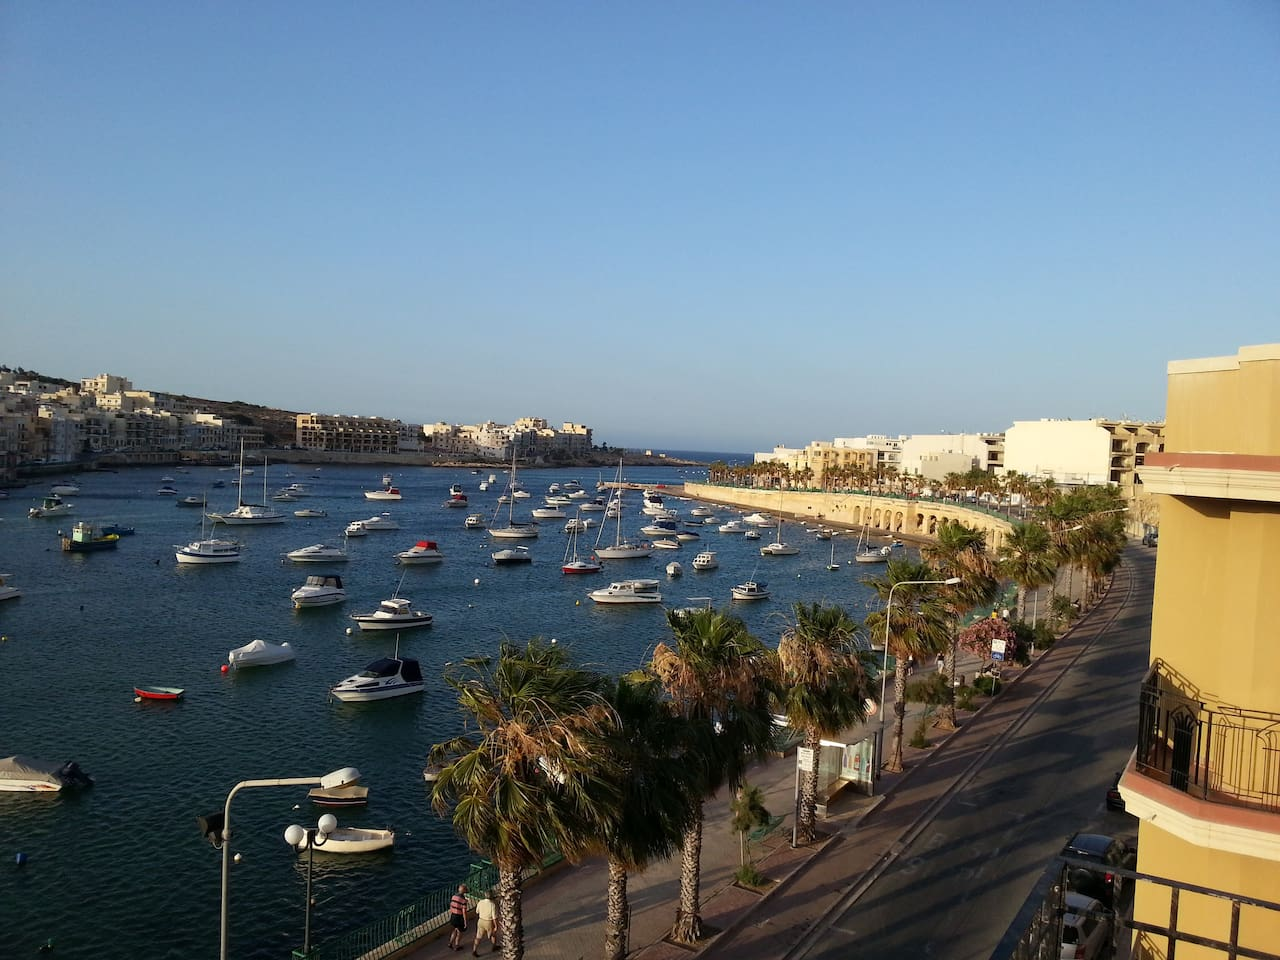 The view of Marsascala Bay from the roof terrace of Akwador Guest House